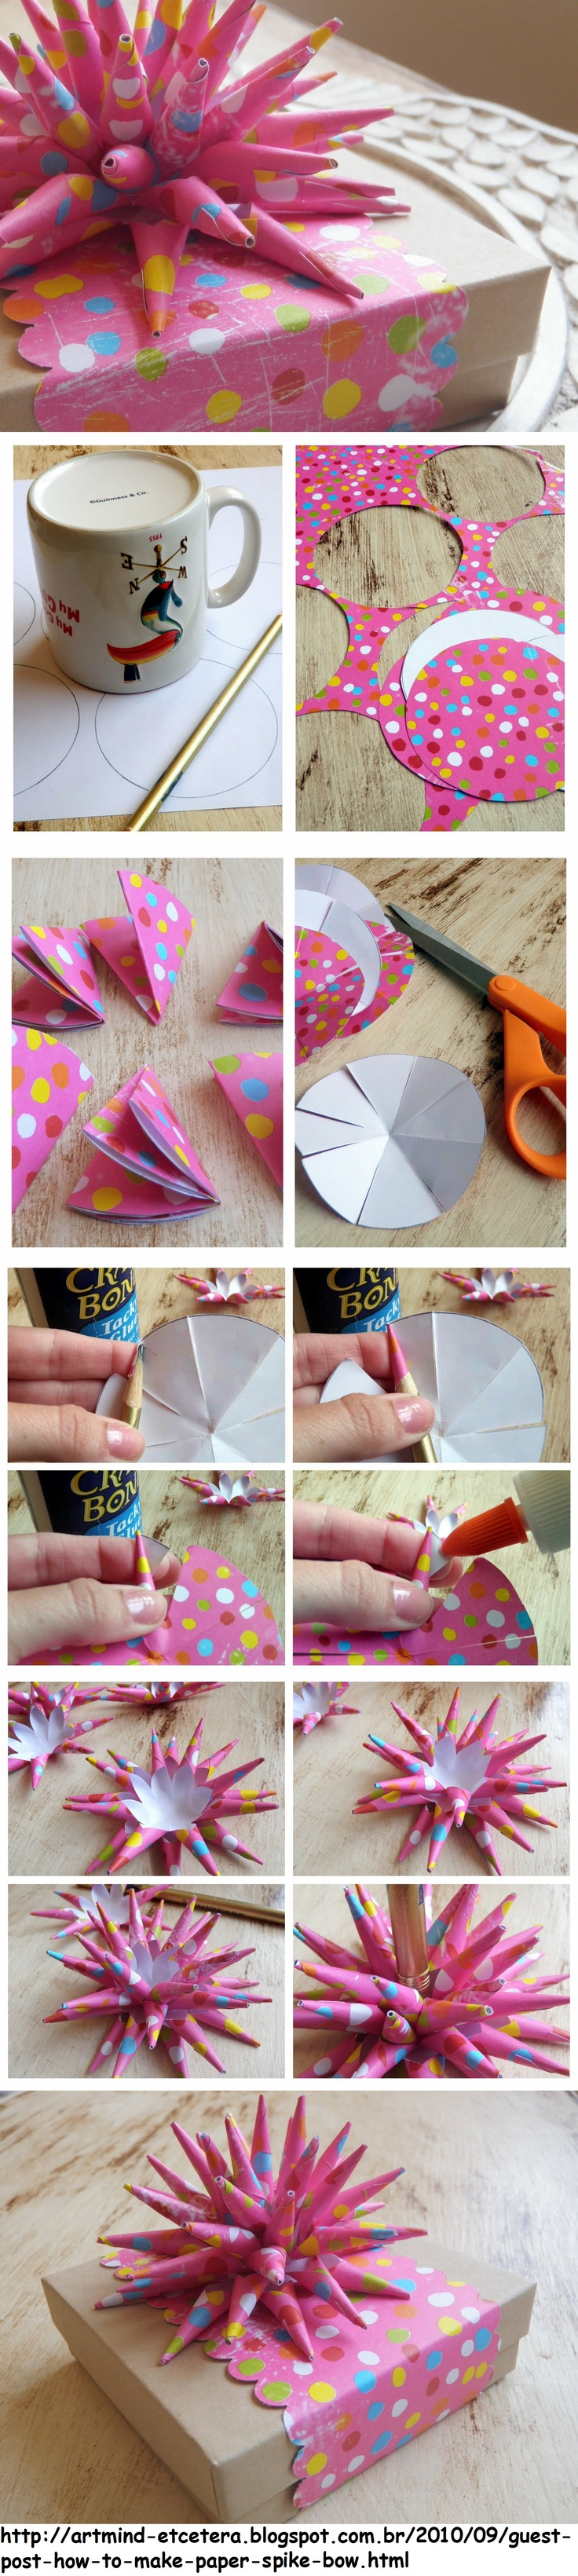 Paper spike bow tutorial